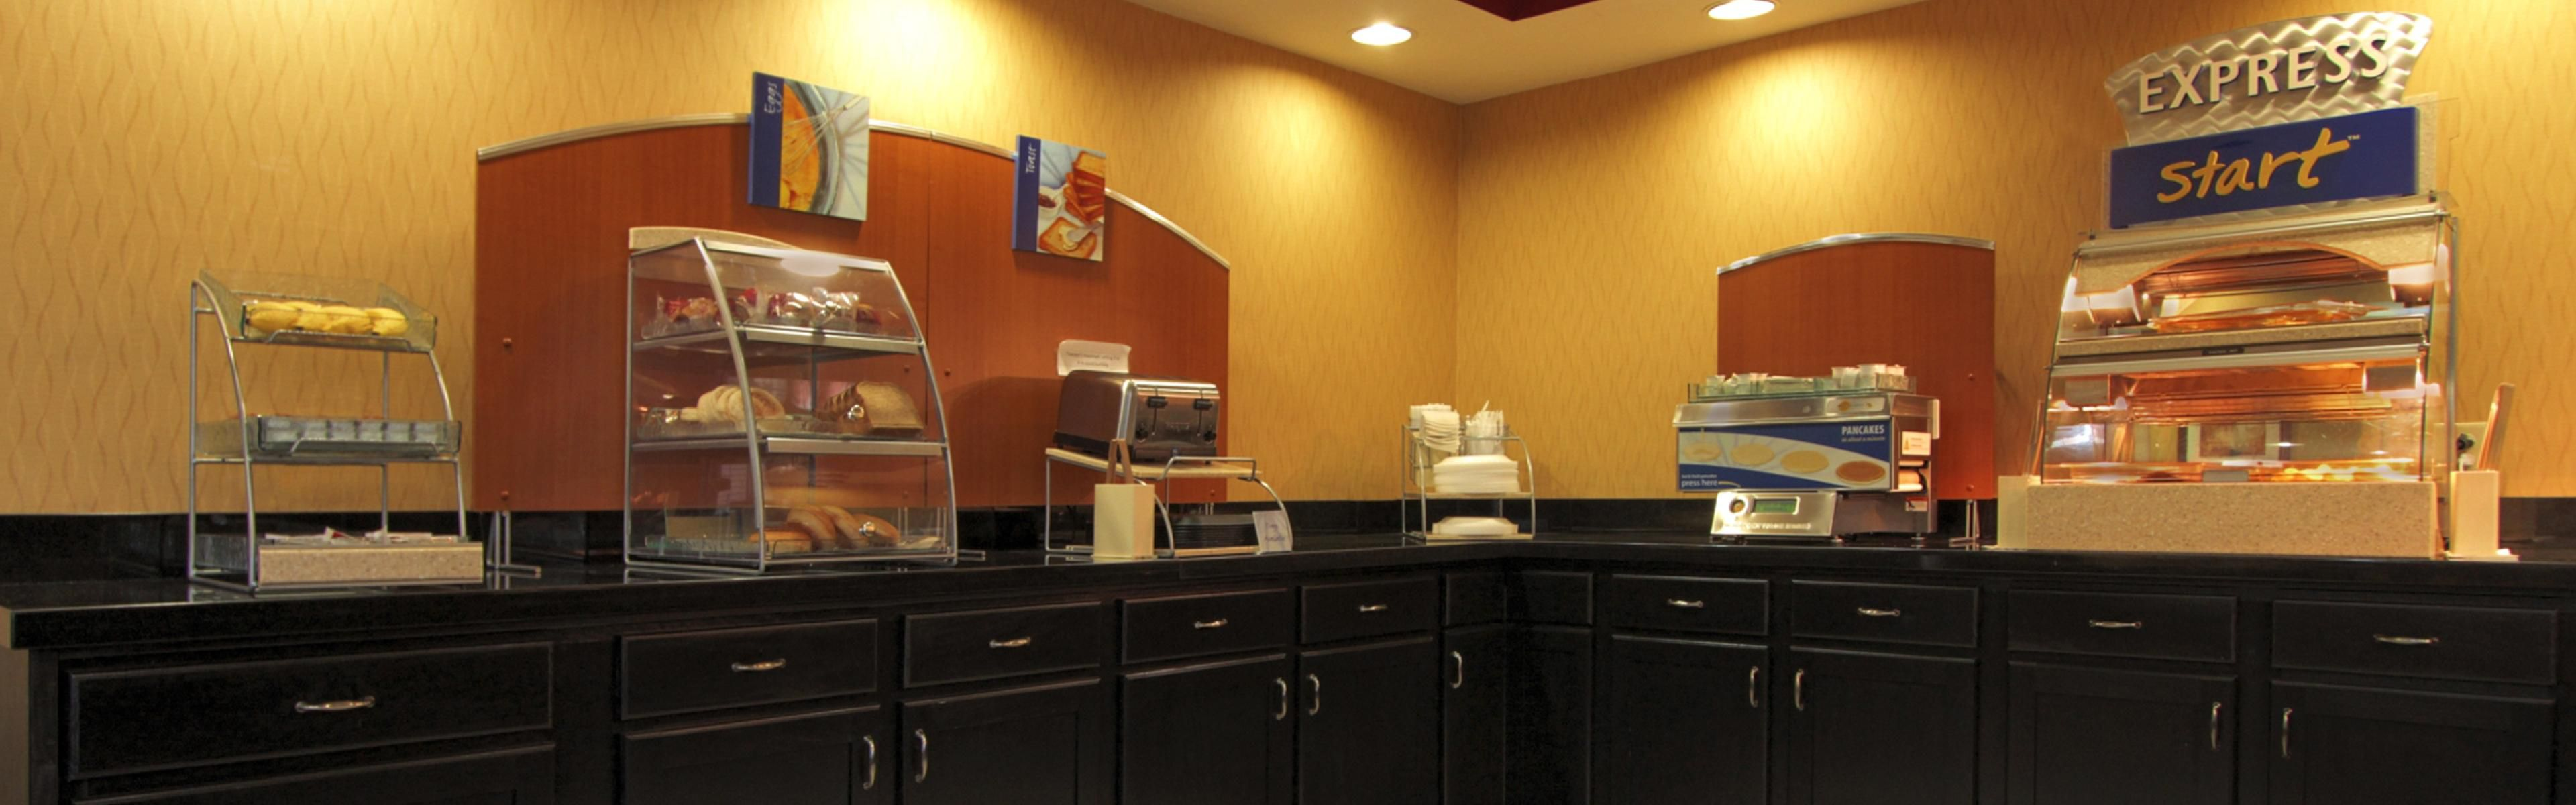 Holiday Inn Express & Suites Defiance image 3